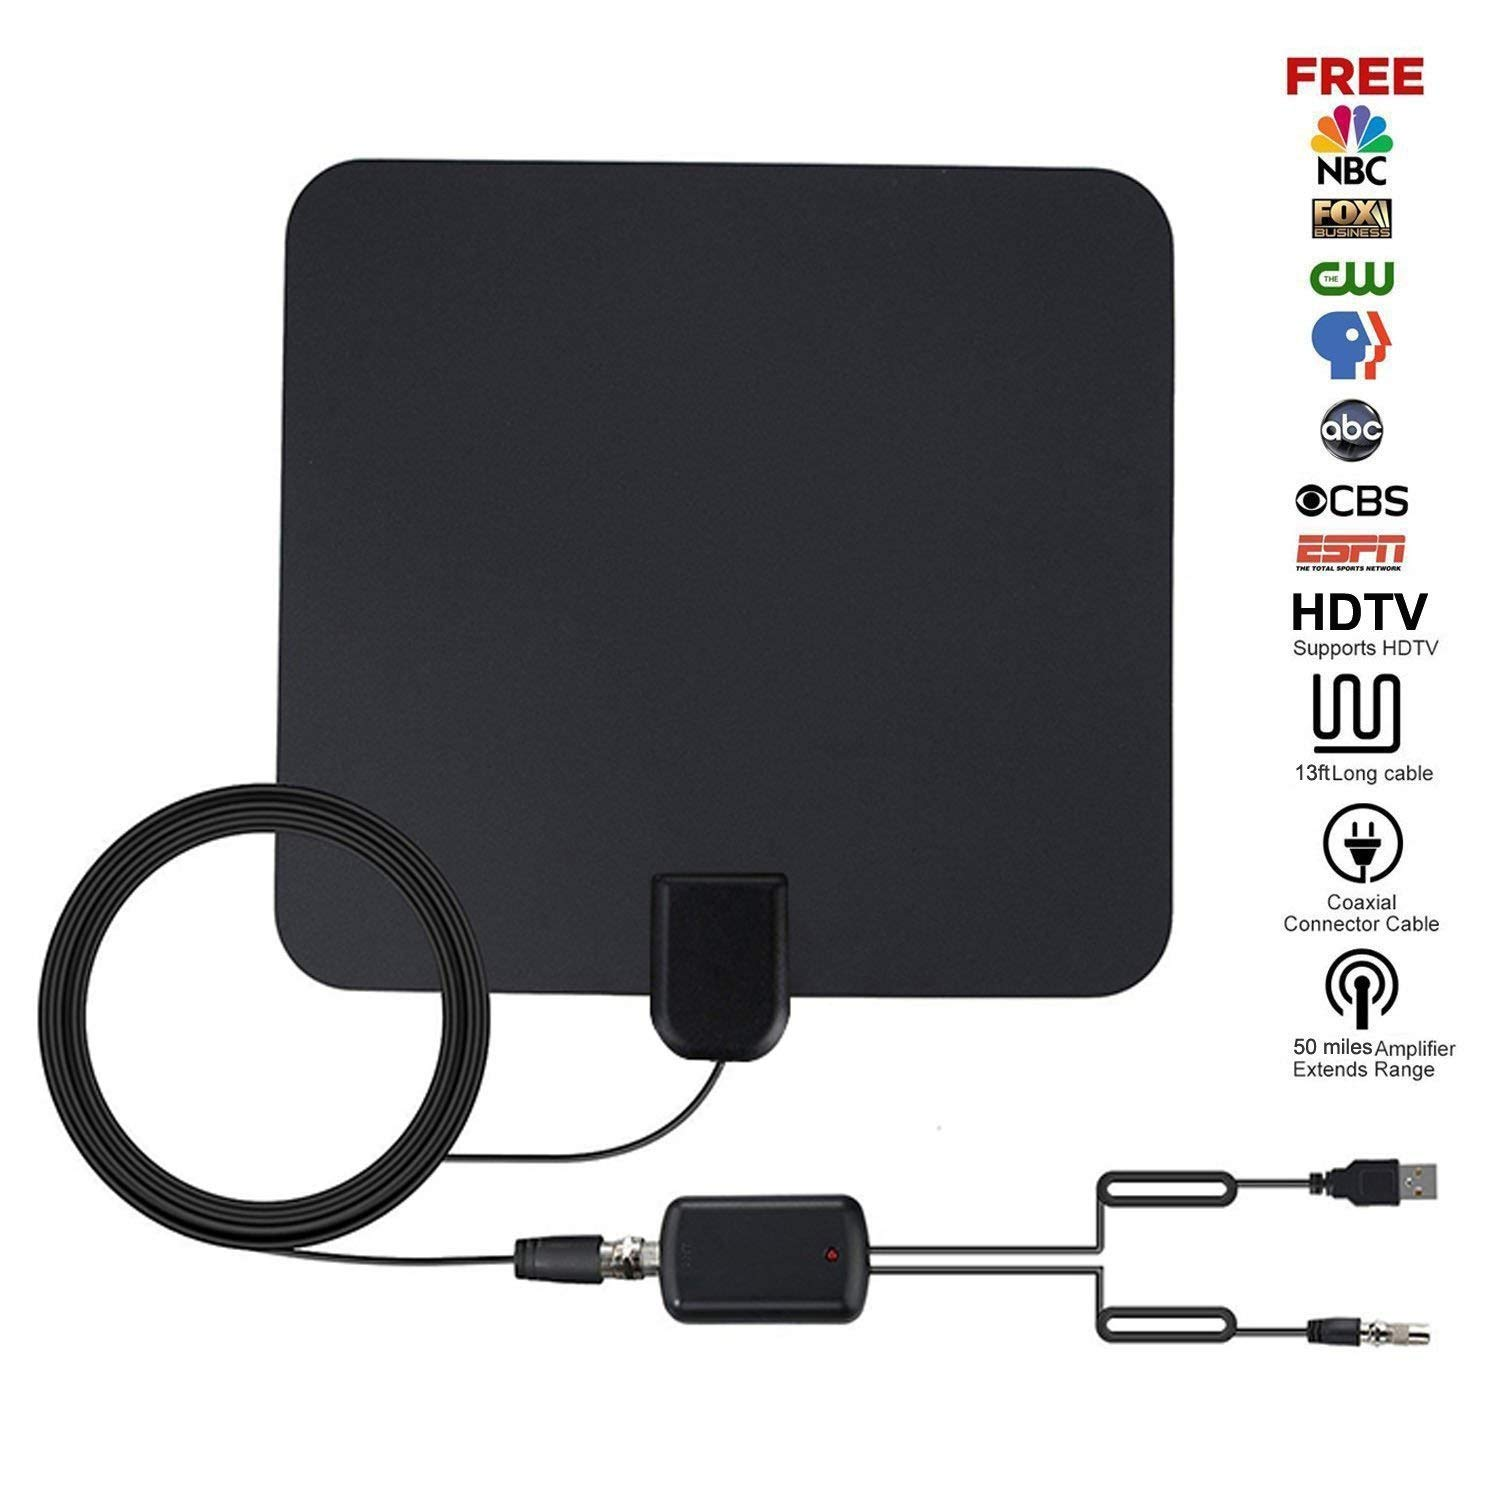 TV Antenna,Saytay Upgraded 2018 Version HD Digital TV Antenna Kit with Detachable Amplifier Signal Booster for Indoor,Best 50 Miles Long Range 1080P Adapter,13ft Coax Cable Support All TV's